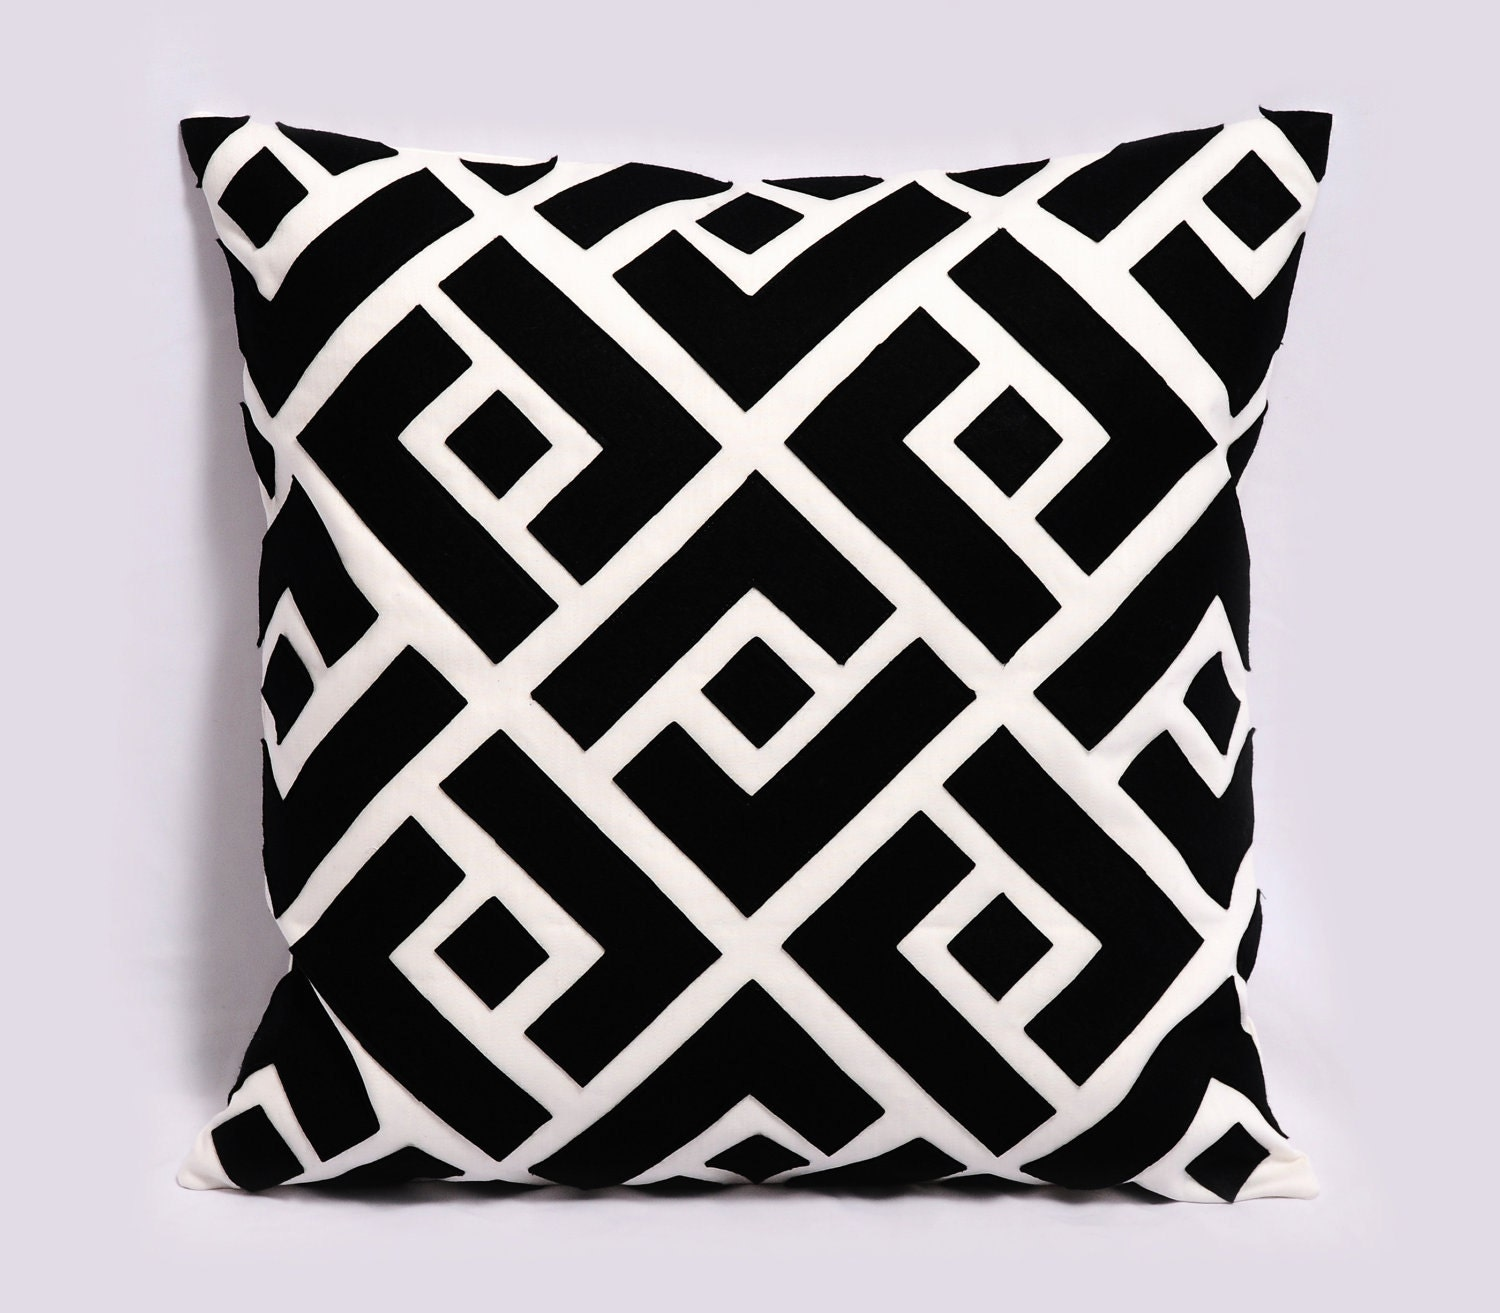 Black And White Geometric Throw Pillows : Items similar to Black and White Pillow Cover, Decorative Pillows, Black throw pillow, 18x18 ...